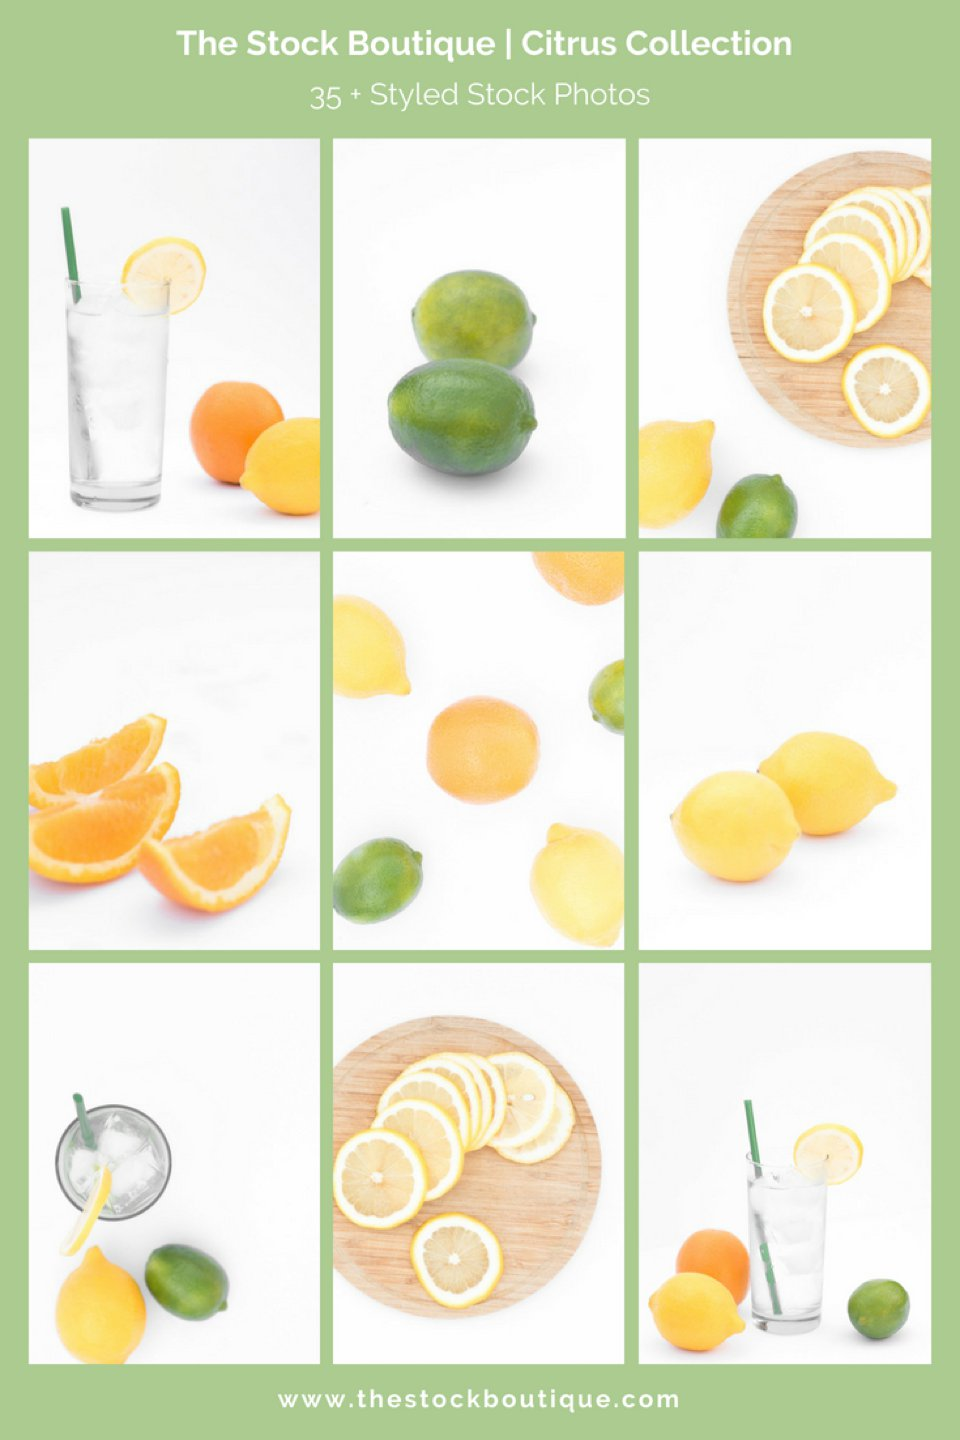 Feminine styled stock photography. We giveaway a stock photo every month when you subscribe! www.thestockboutique.com   #stockphoto     #femaleentrepreneur    #smallbusiness     #citrus    #fruitstockphotos